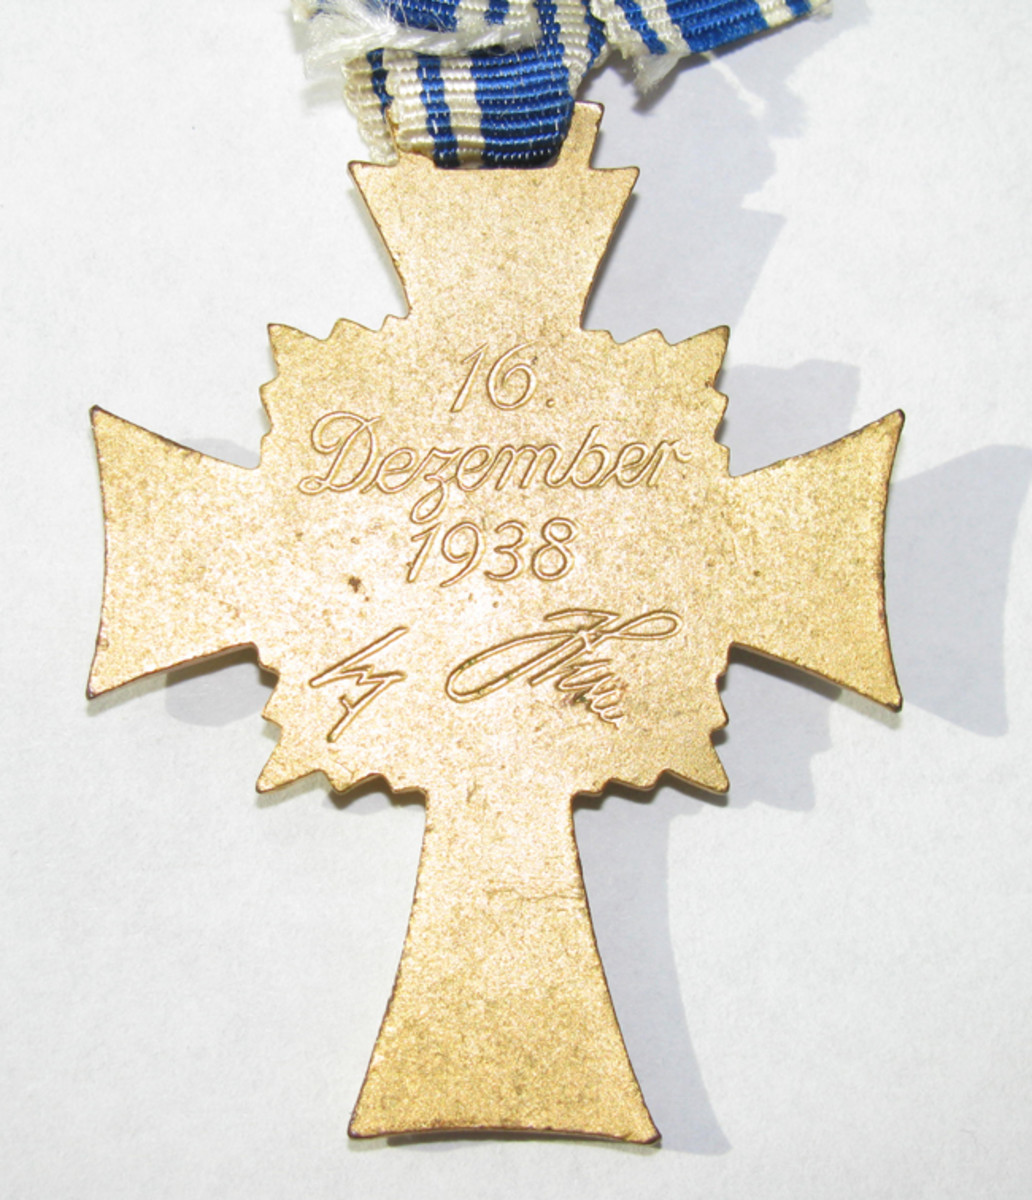 he date, December 16, 1938, and Hitler's signature were stamped into the reverse of the second issue Mother's crosses.